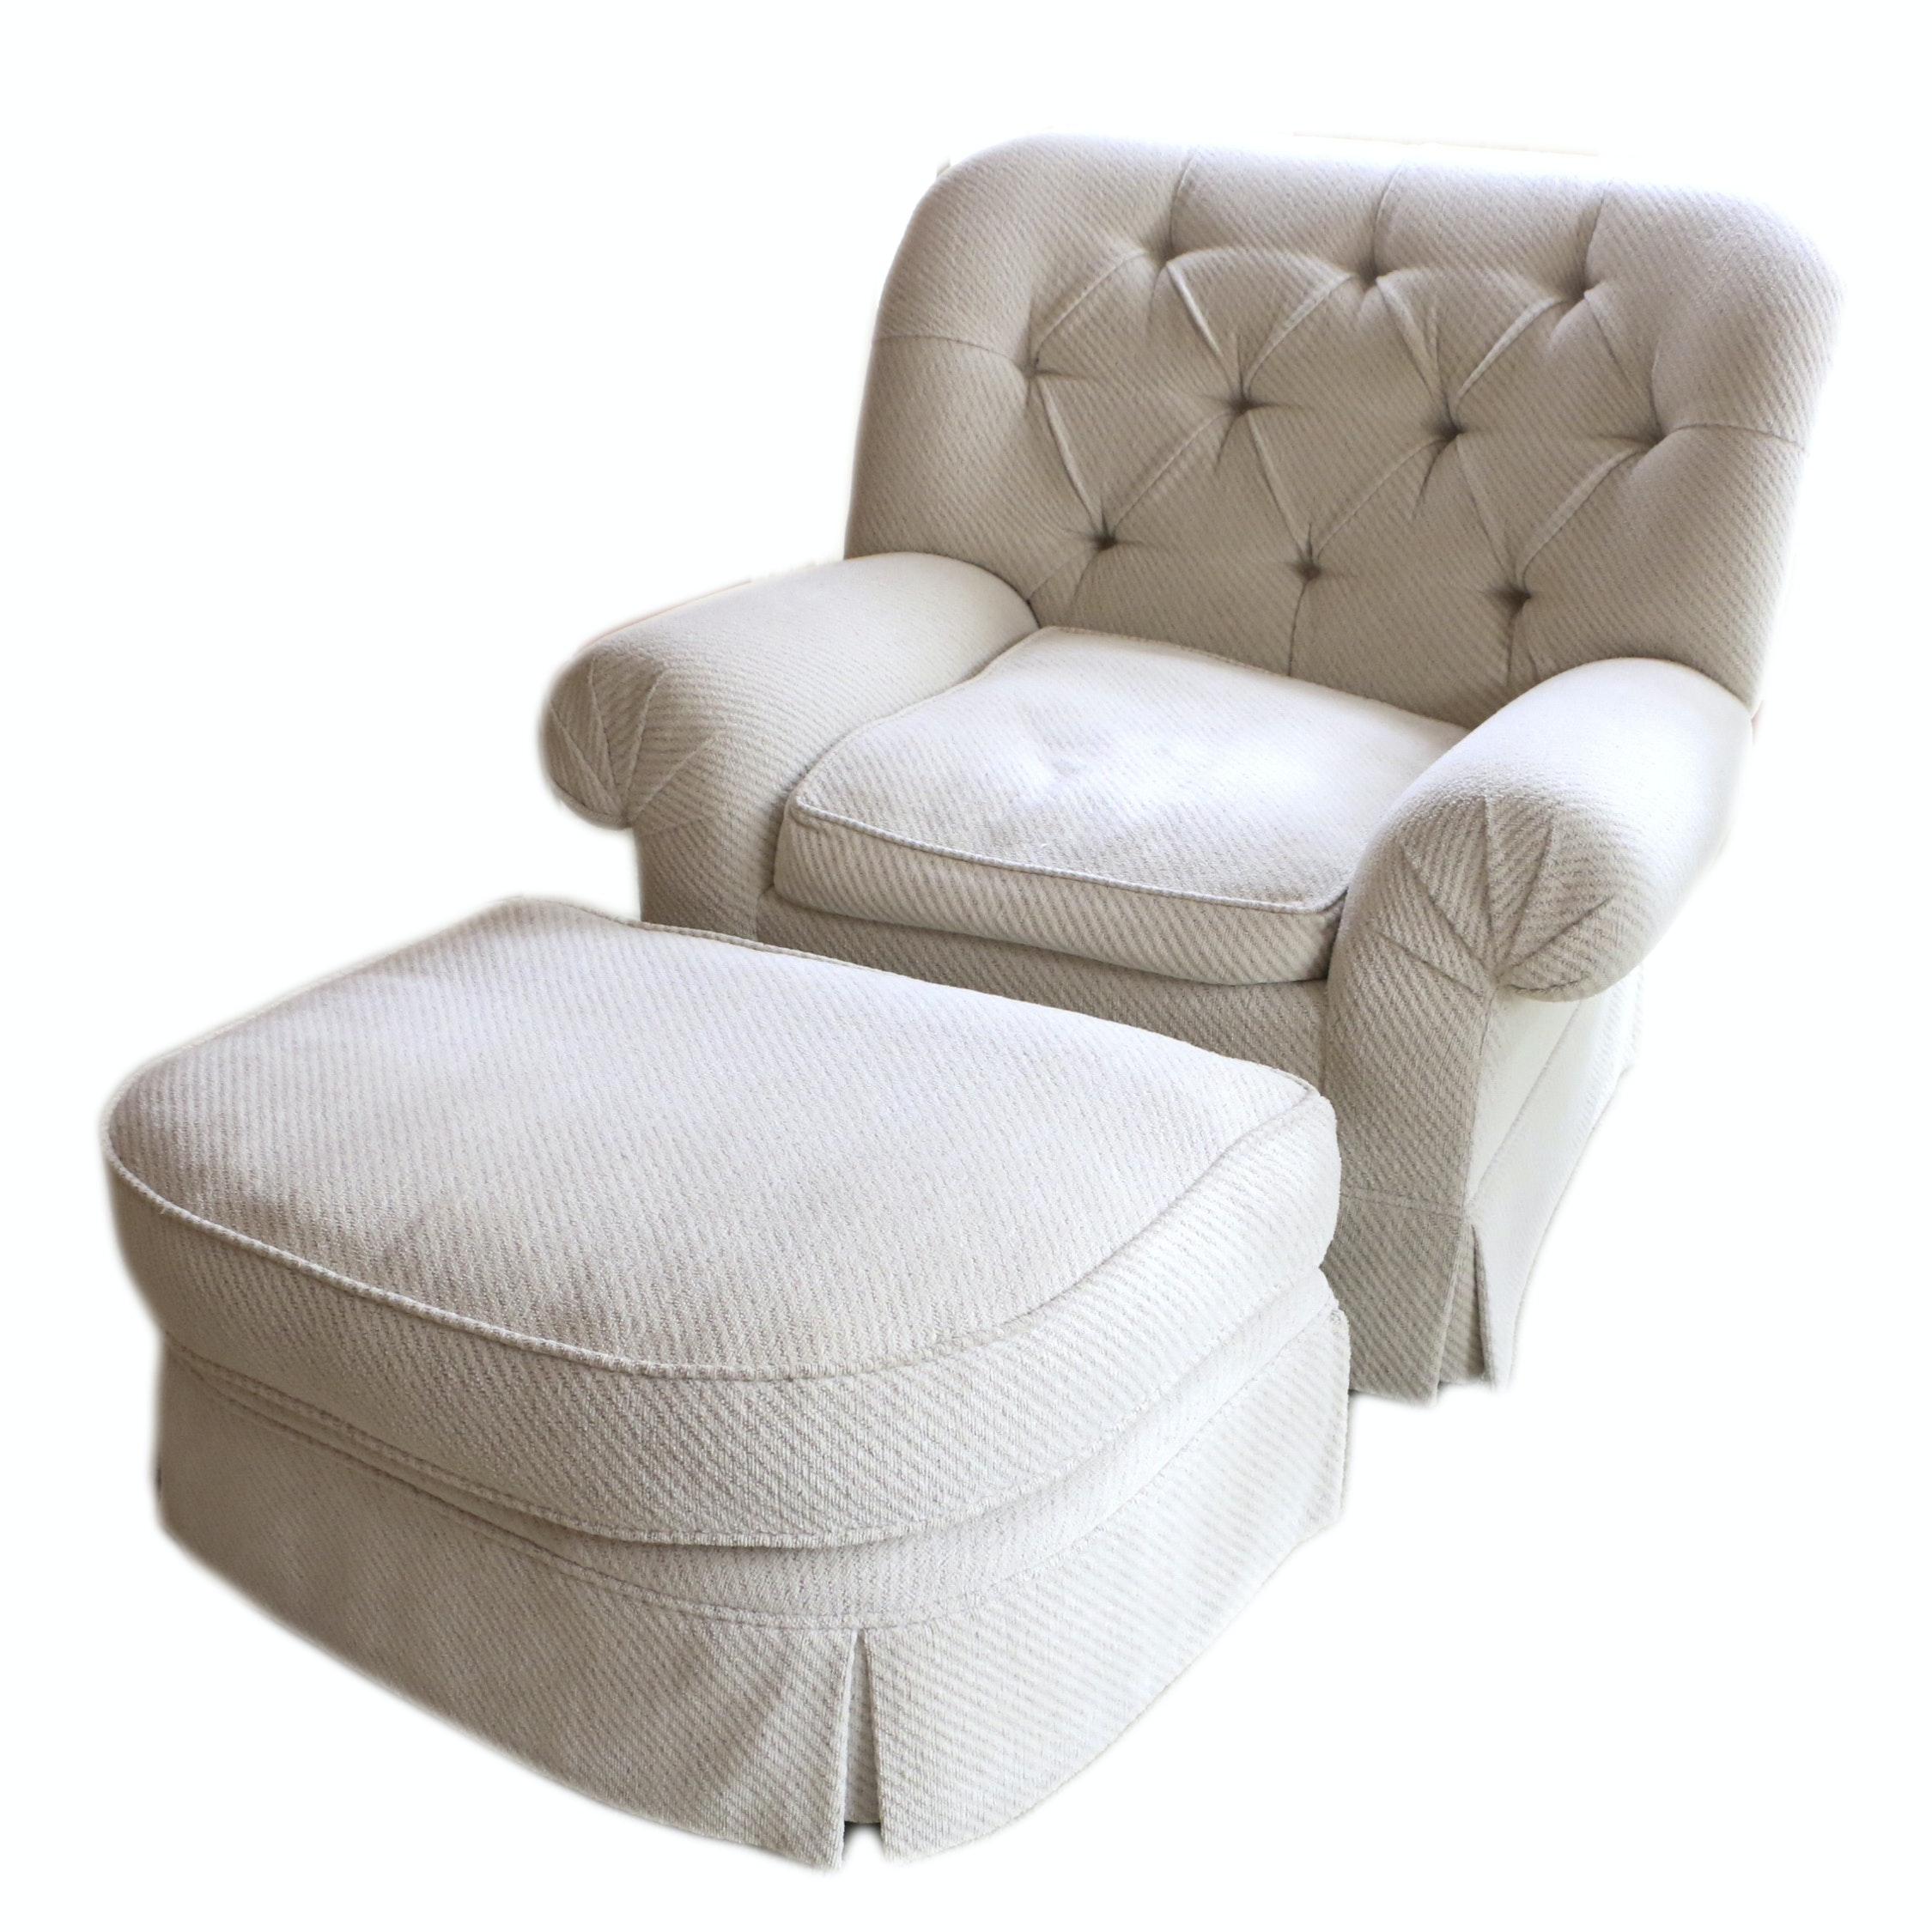 Button-Tufted Armchair with Ottoman